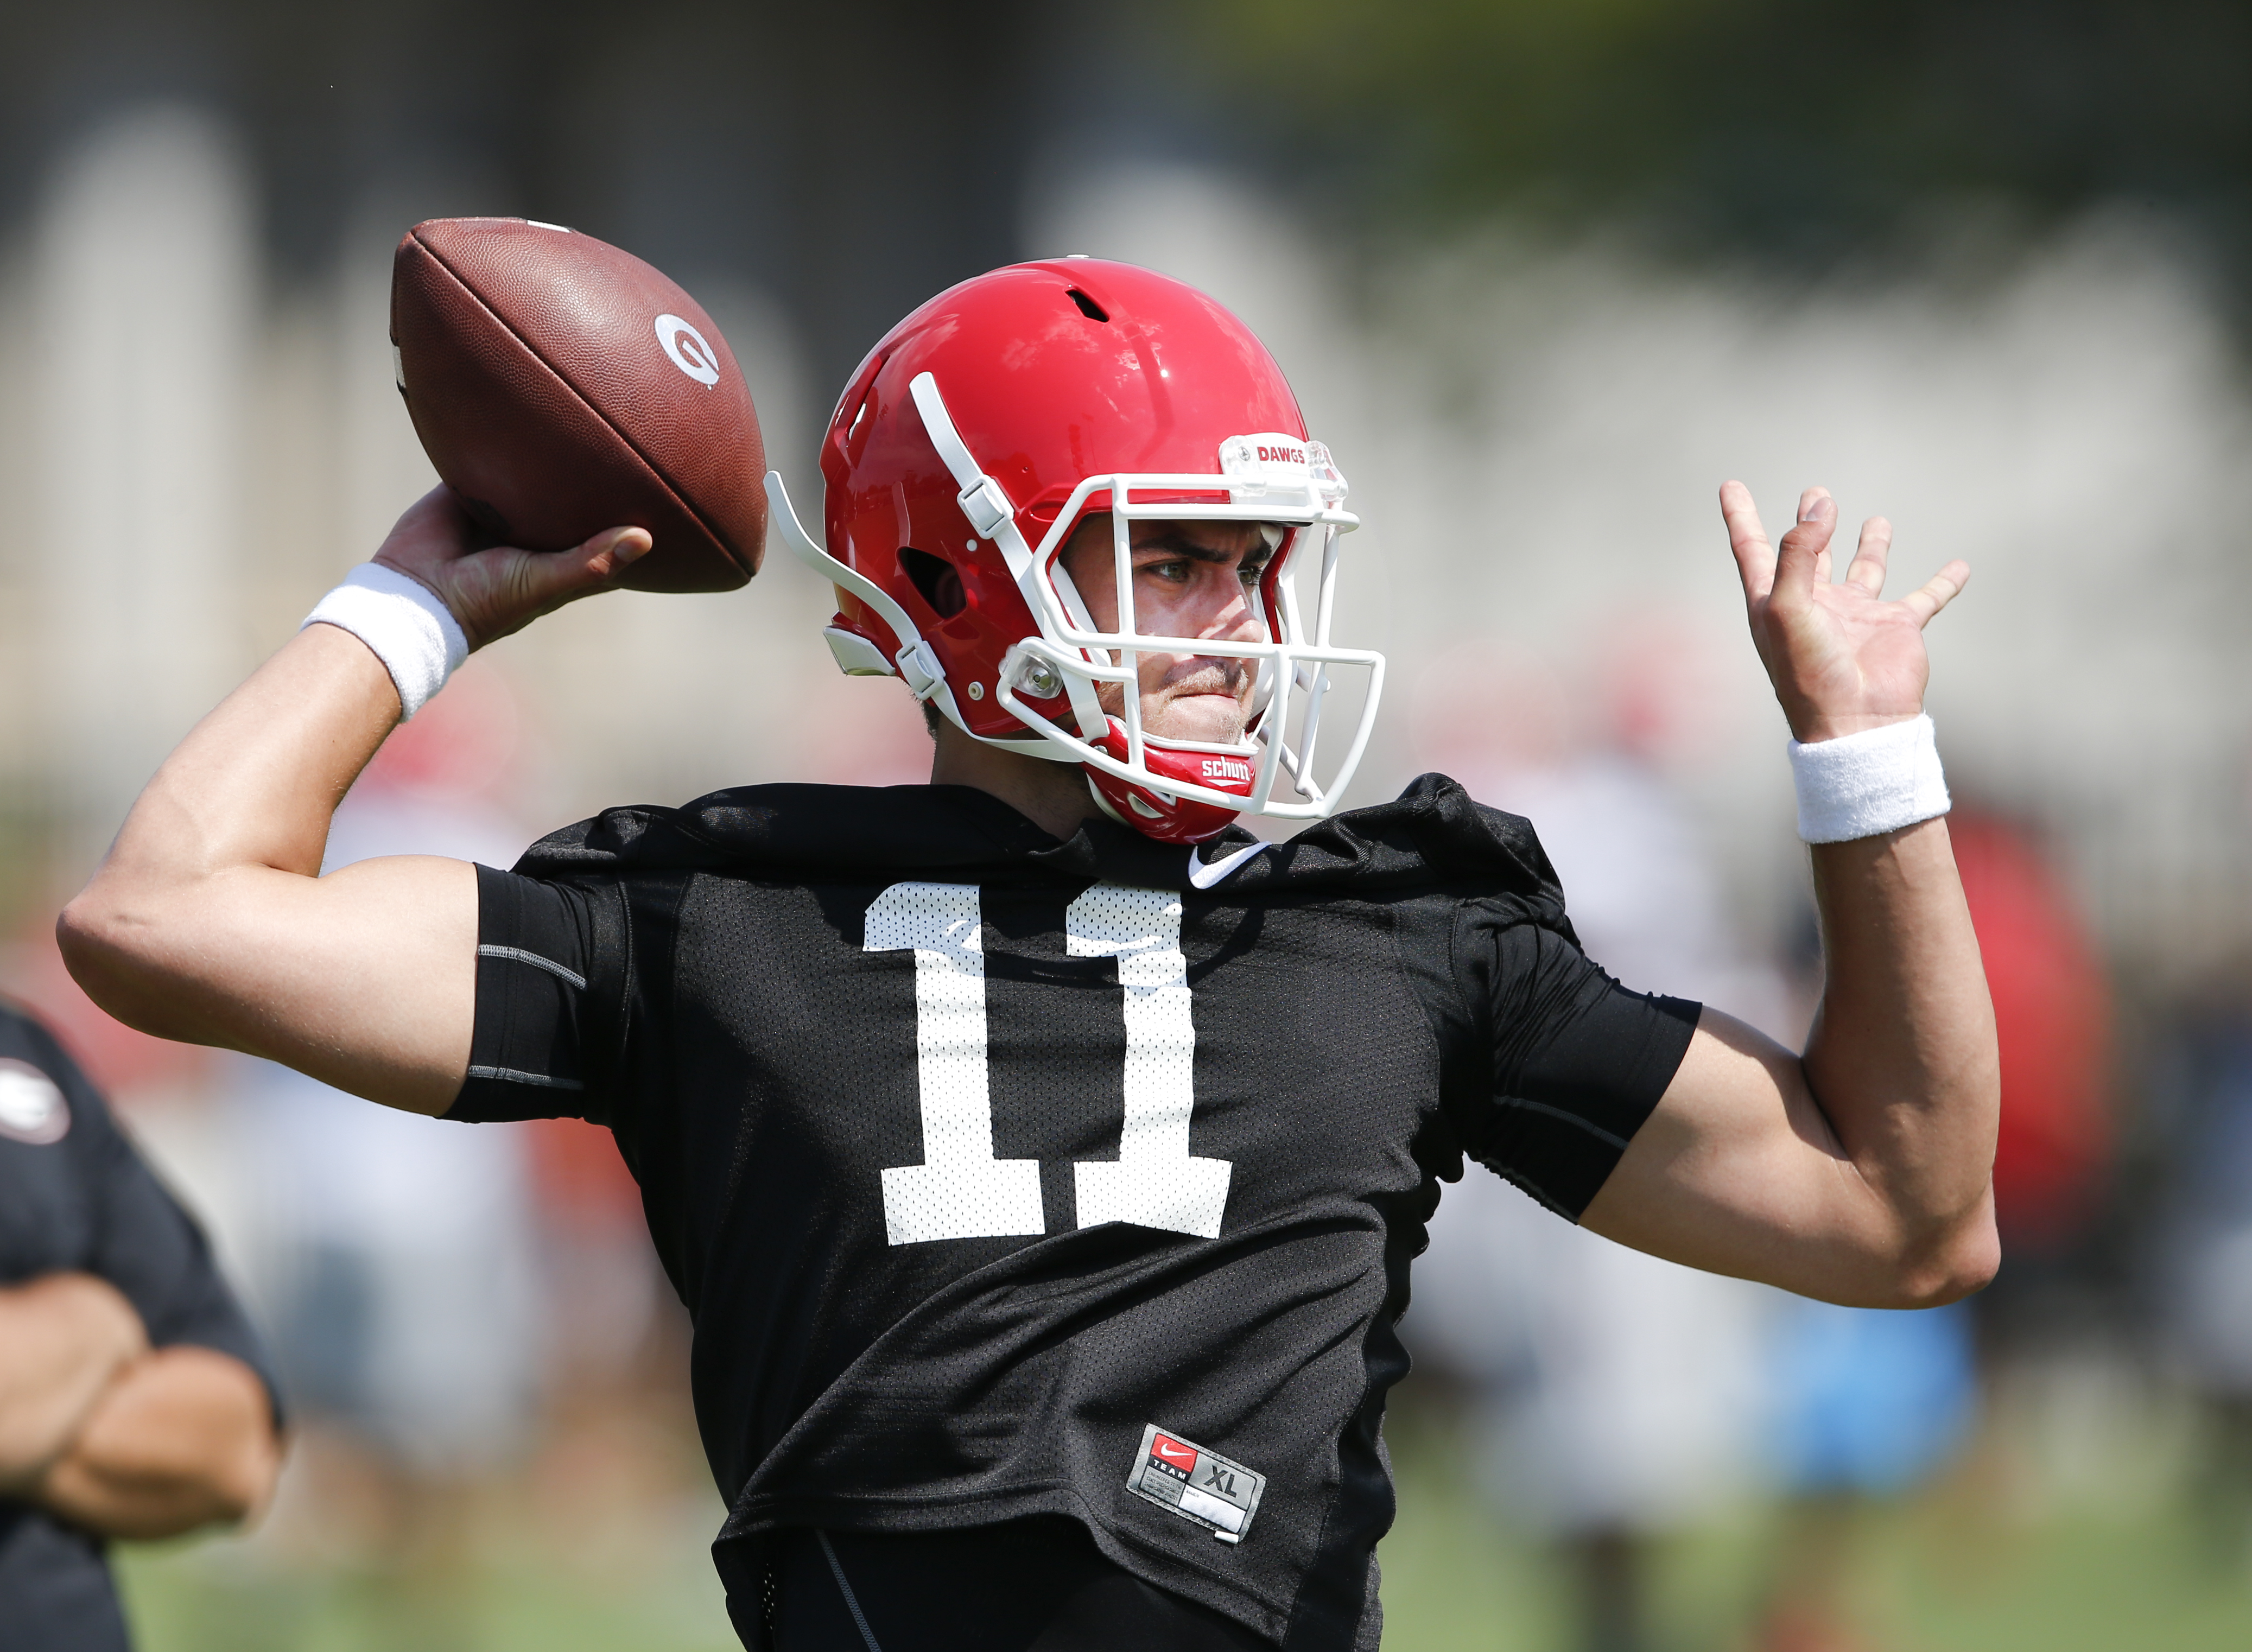 FILE - In this Aug. 4, 2015, file photo, Georgia quarterback Greyson Lambert works during a college football practice in Athens, Ga. Lambert is competing for the starting job. (AP Photo/John Bazemore, File)